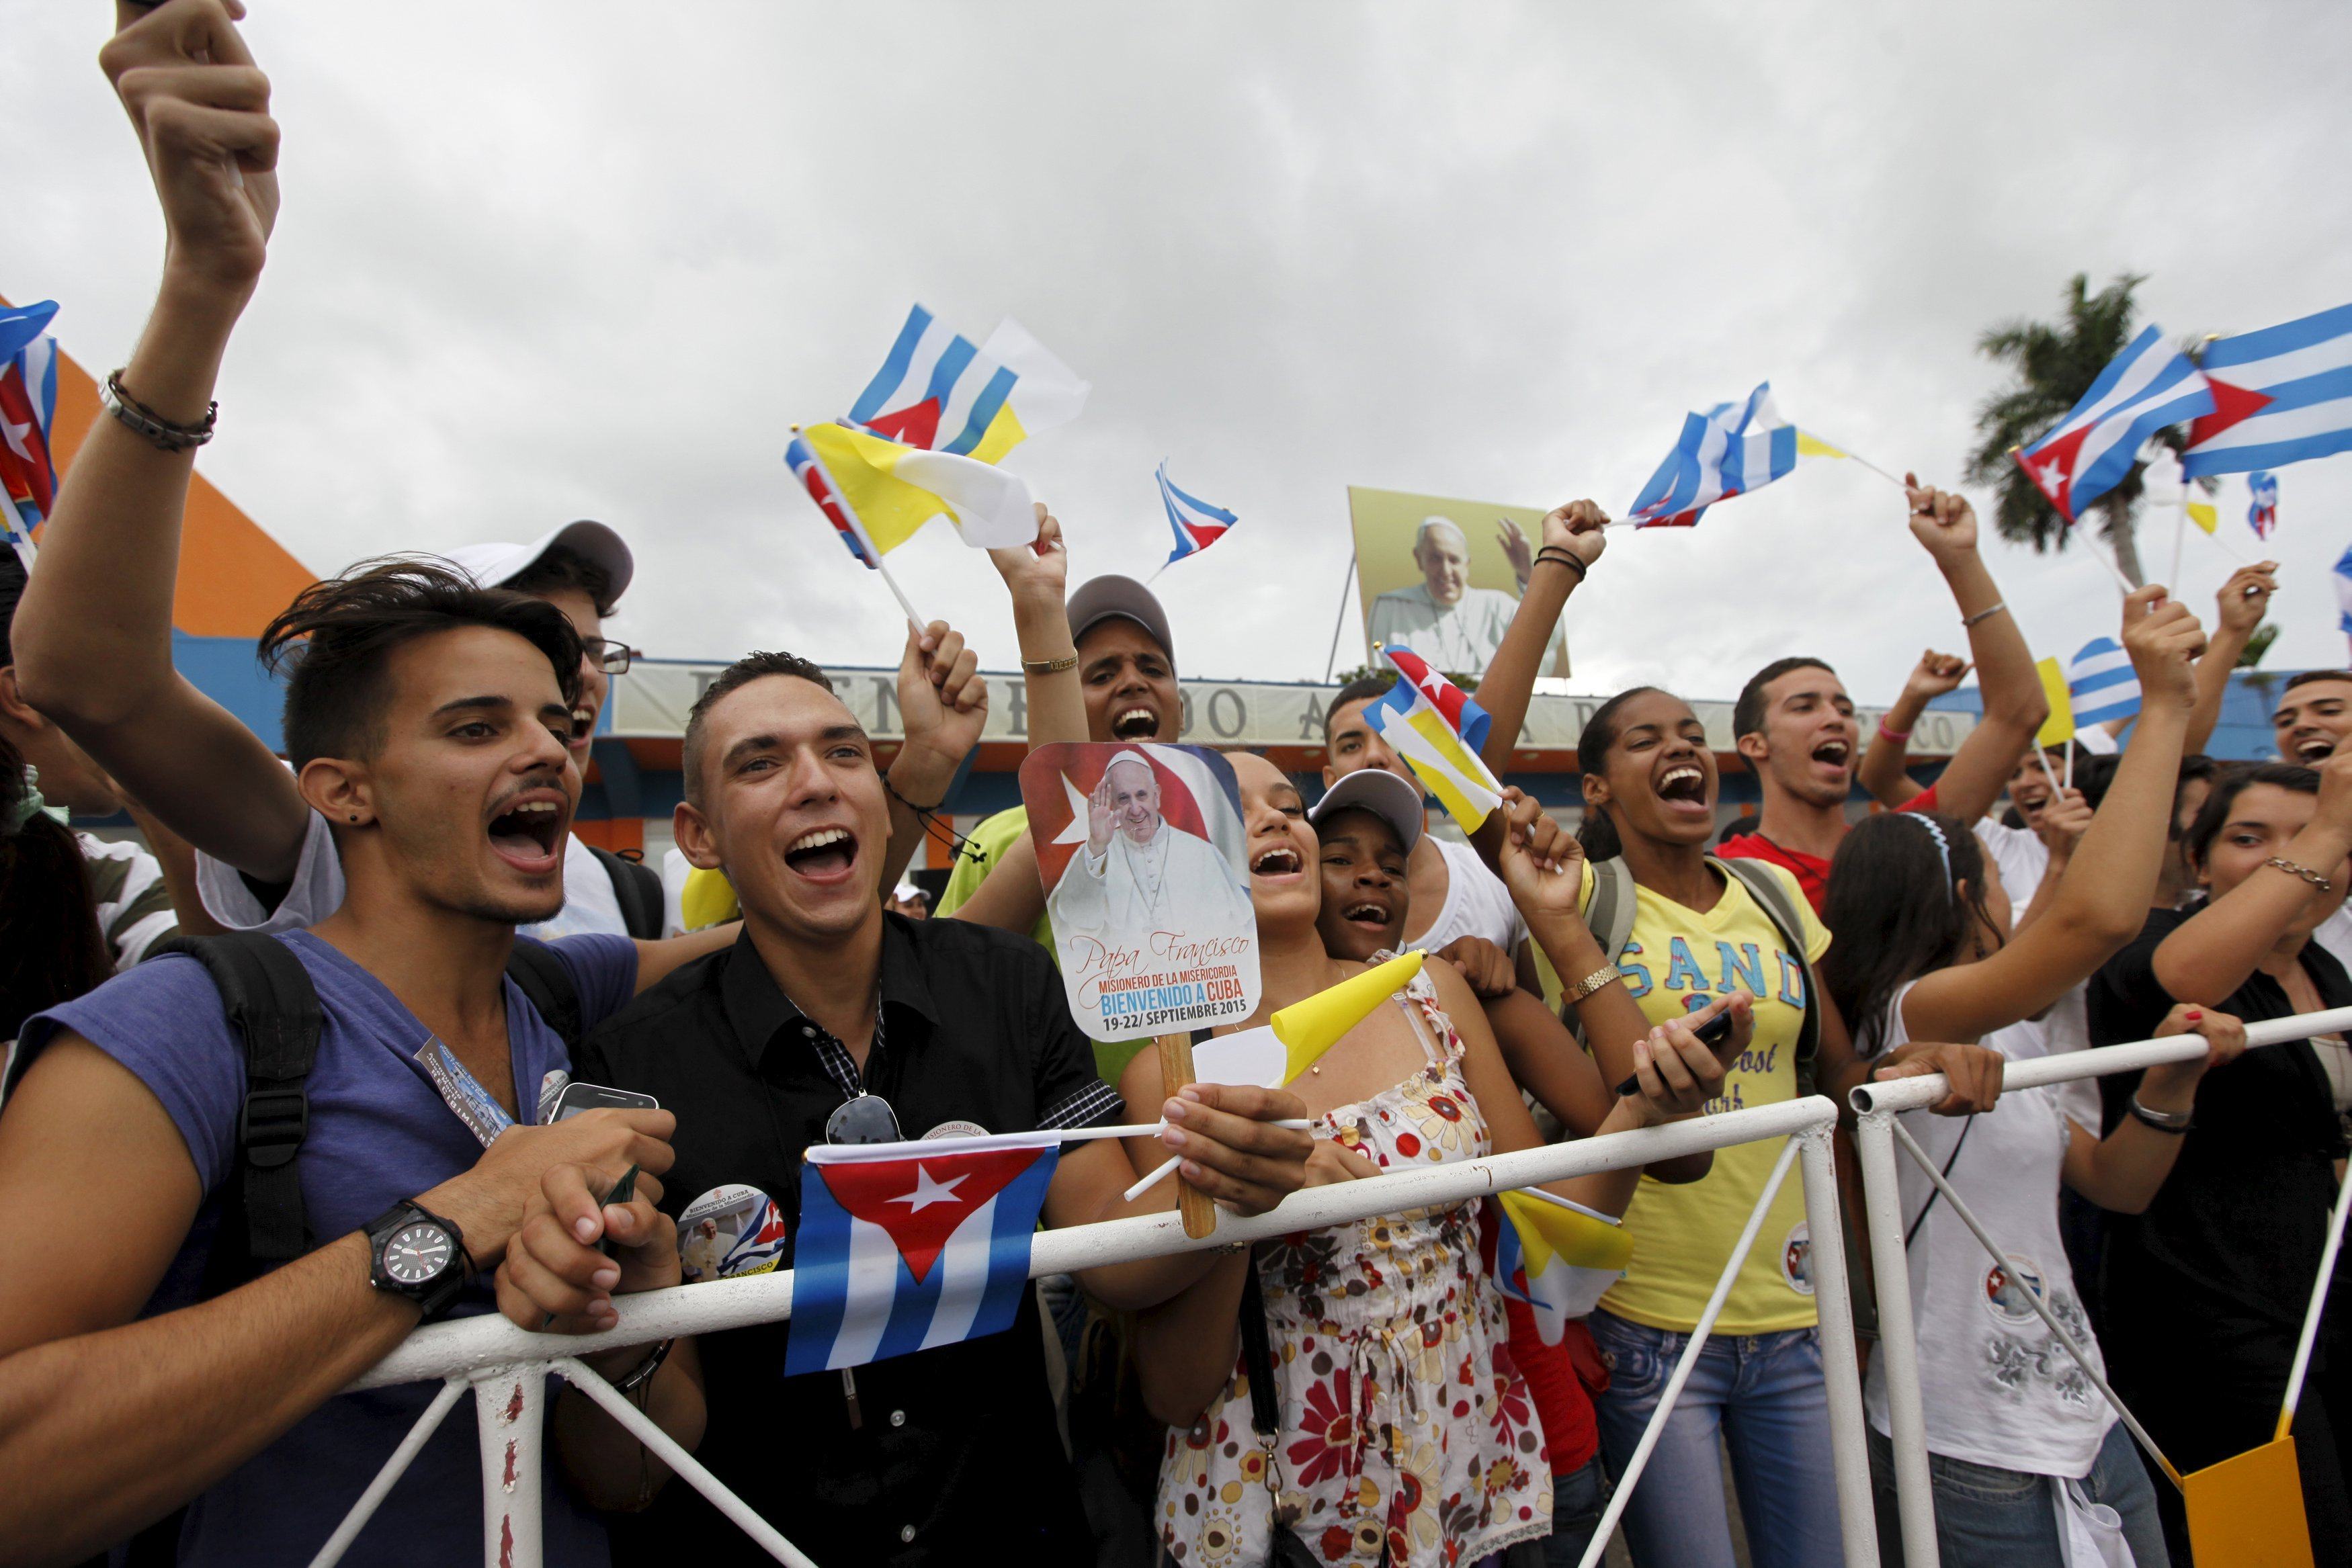 People react after the arrival of Pope Francis outside the airport in Havana, on Sept. 19, 2015.